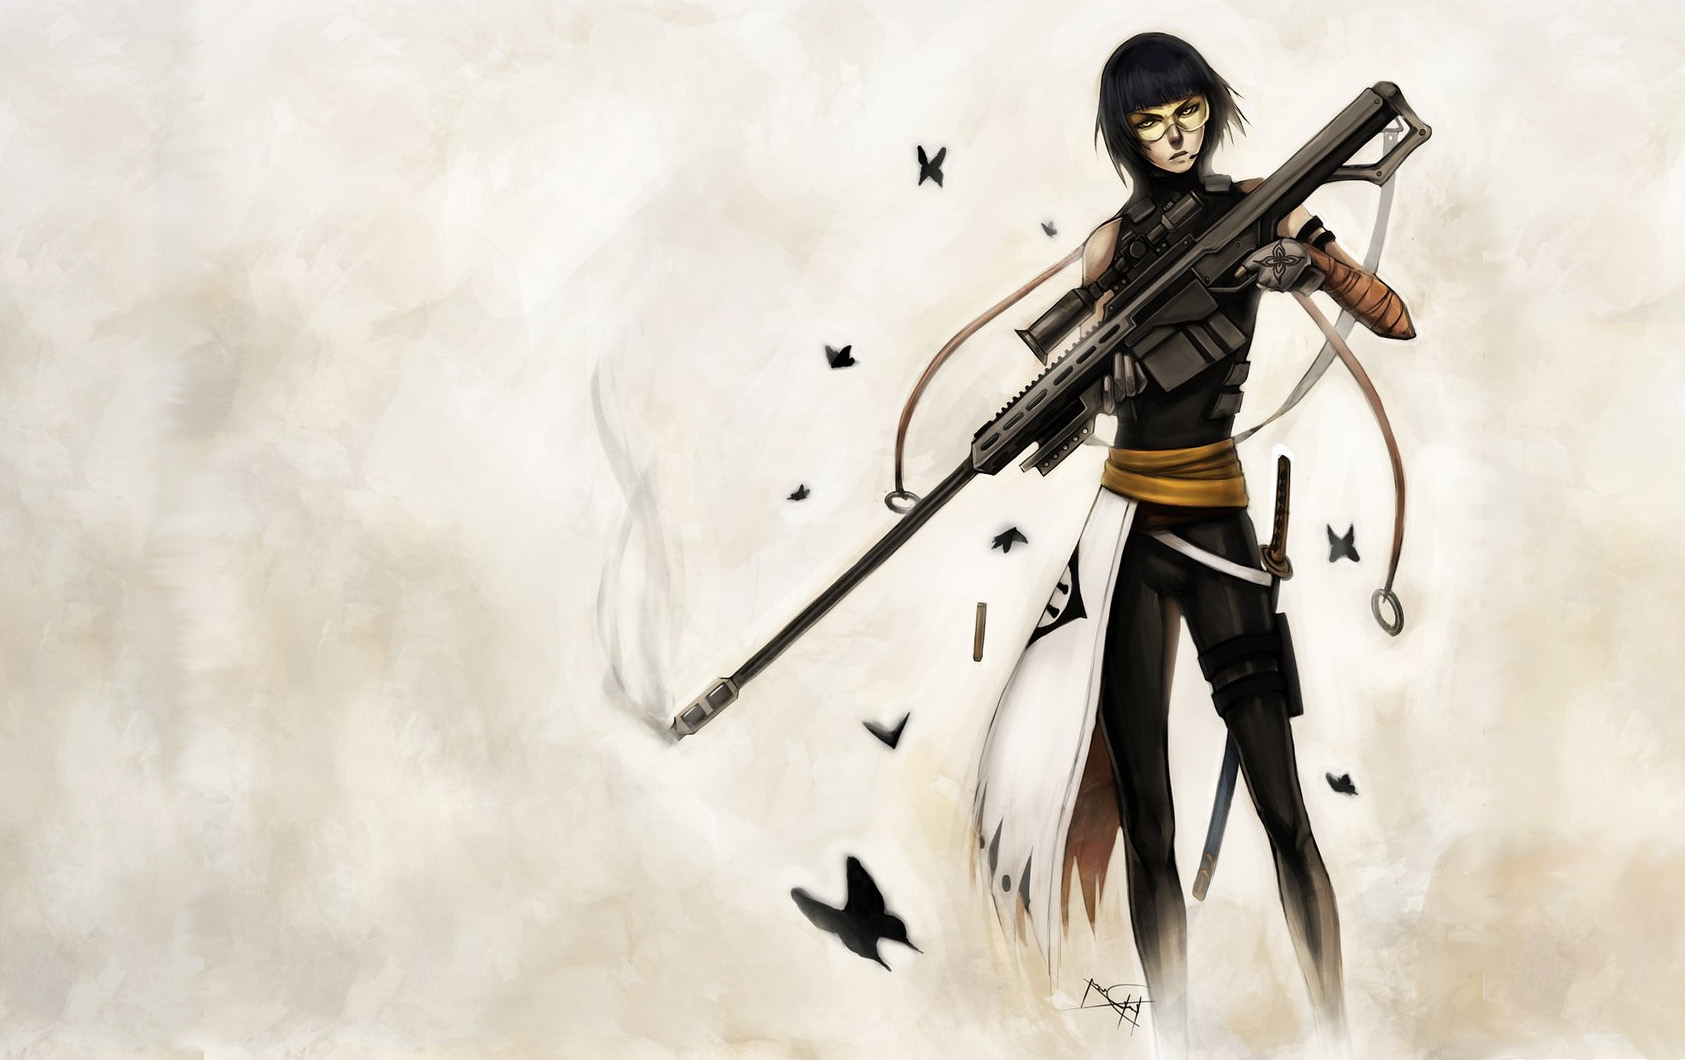 Drawn snipers anime boy Anime/Wallpapers #1785305 #1785305 w/ »